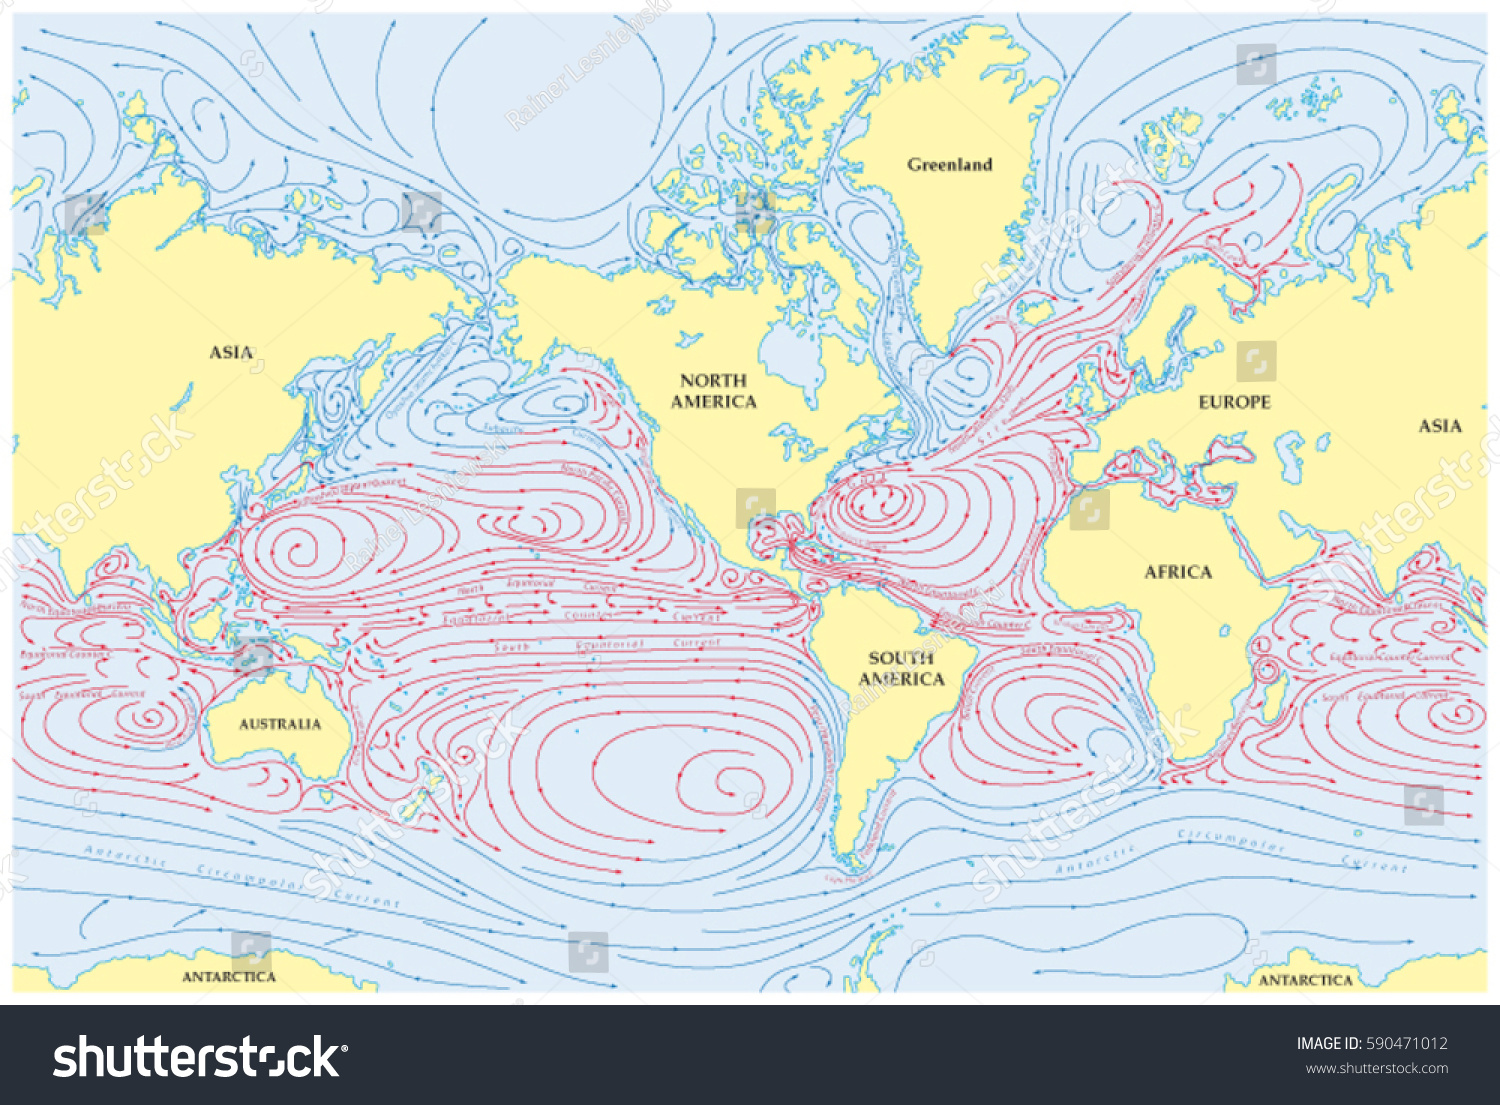 Vector world map all sea currents stock vector 590471012 shutterstock vector world map of all sea currents gumiabroncs Gallery